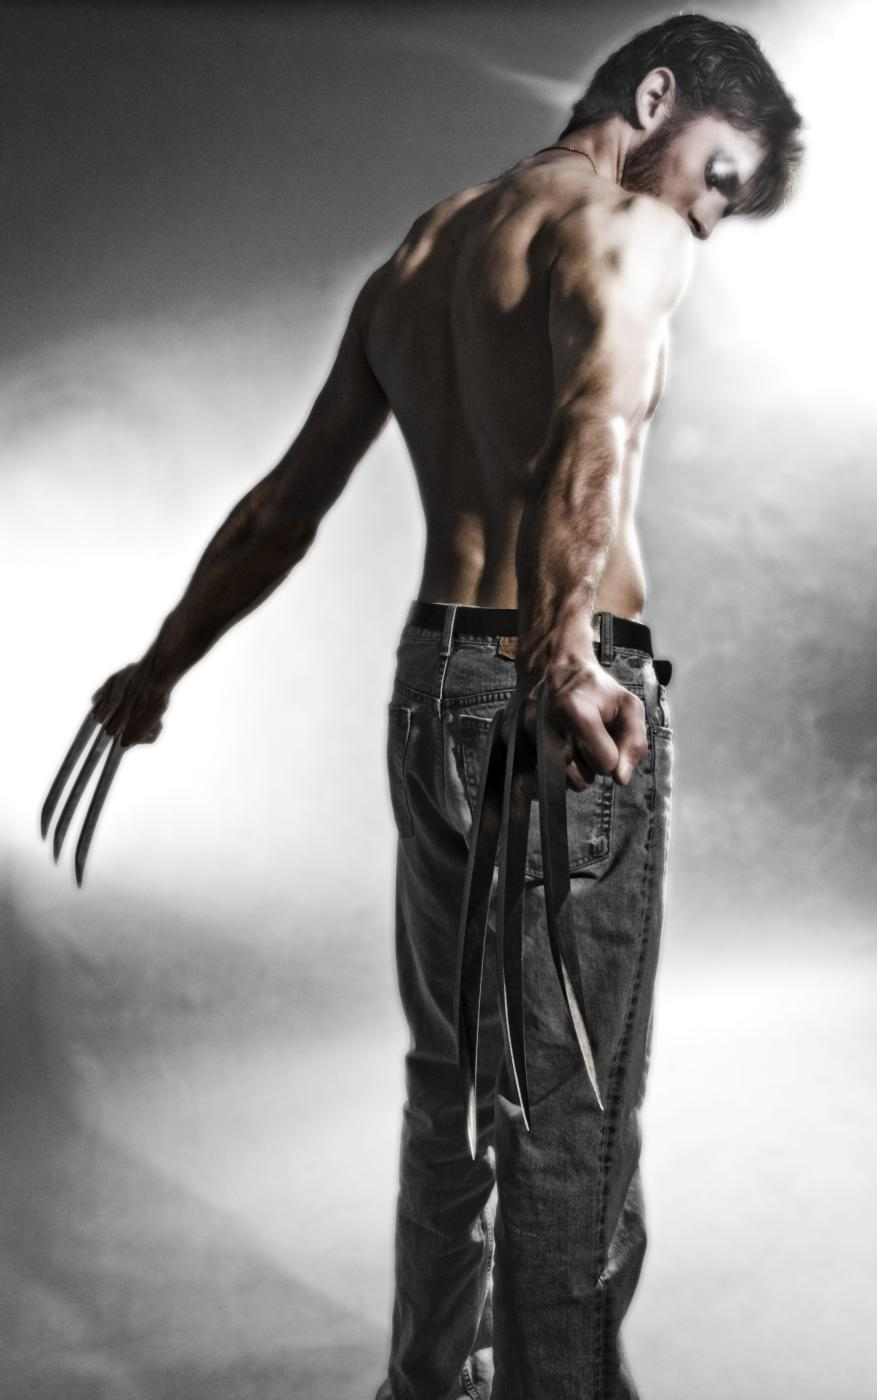 Wolverine claws hacksmith industries a remake of one of the promotional images pronofoot35fo Choice Image